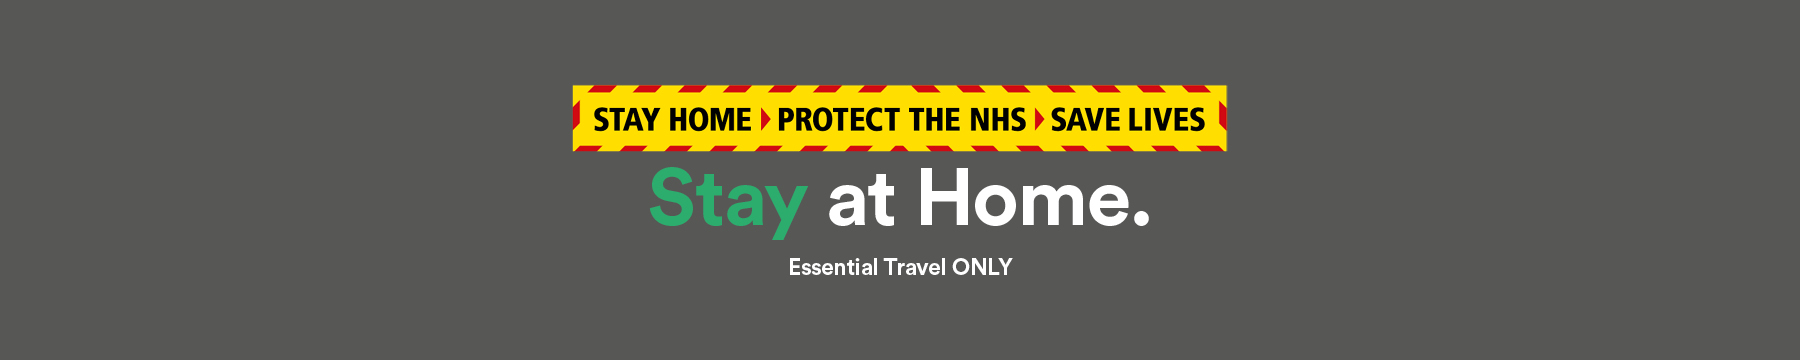 Stay at Home. Essential Travel ONLY